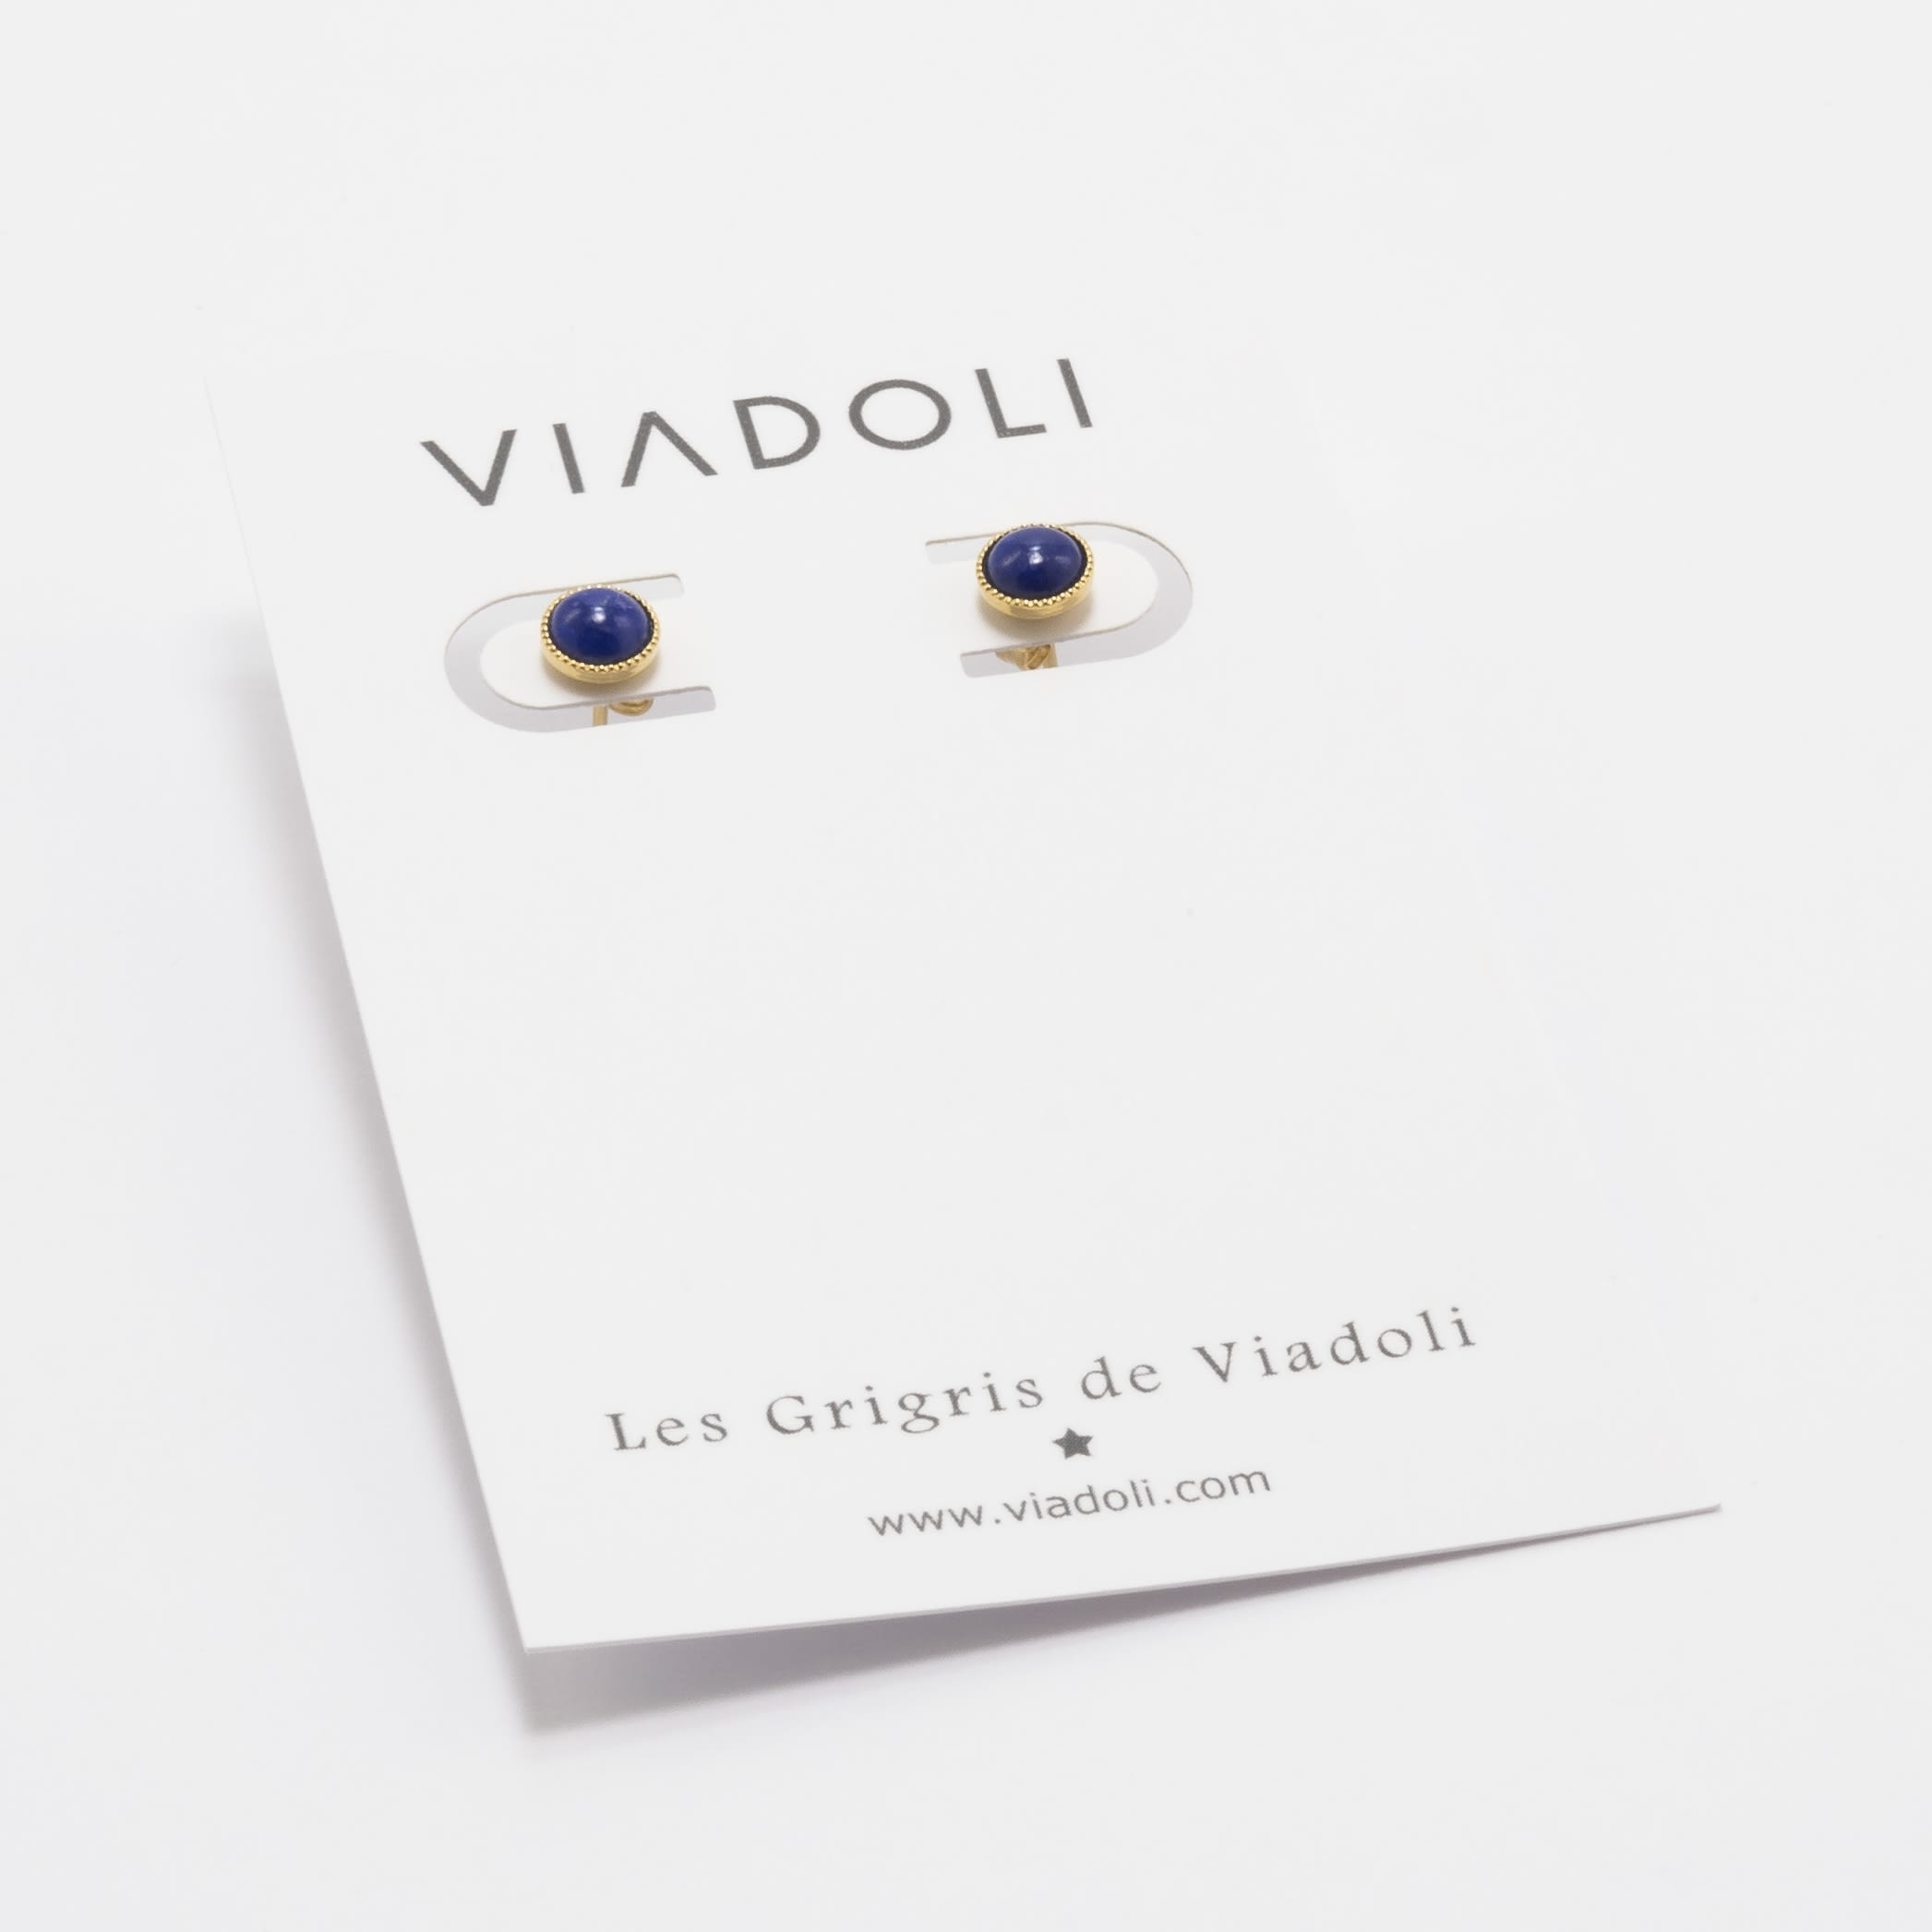 Viadoli Gold-plated Nymphéa stud earrings with Mother-of-Pearl